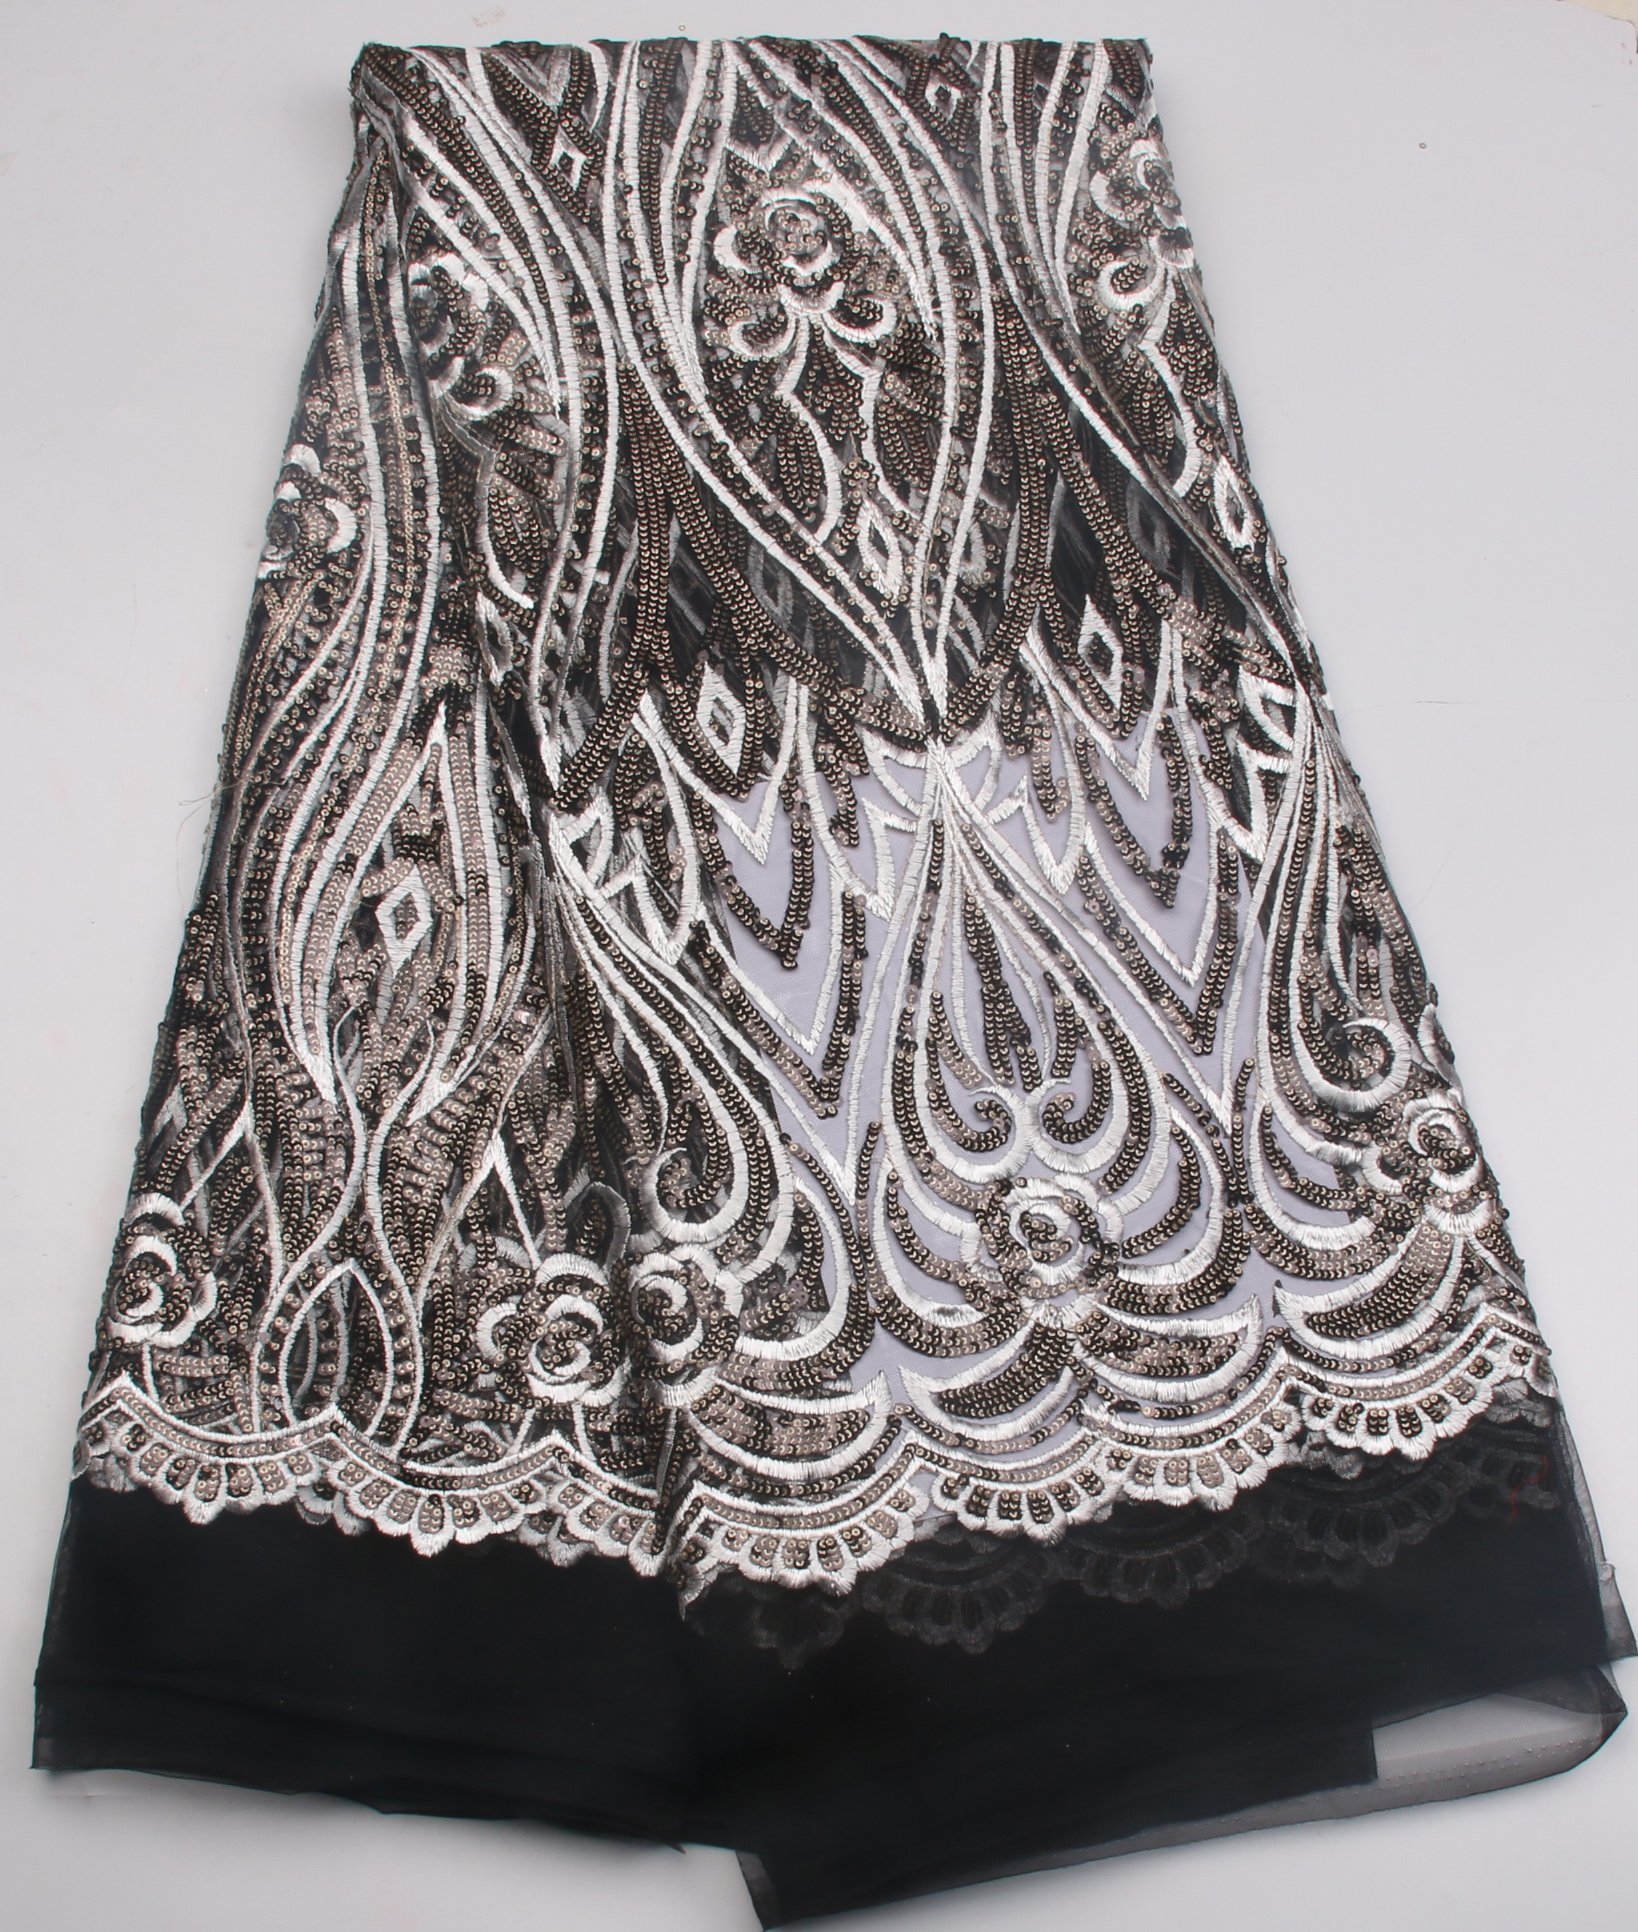 Hot Sale French Lace Fabric African Embroidery Tulle Lace Fabrics High Quality Nigeria Lace Fabric With Sequins For Dress Ks727B